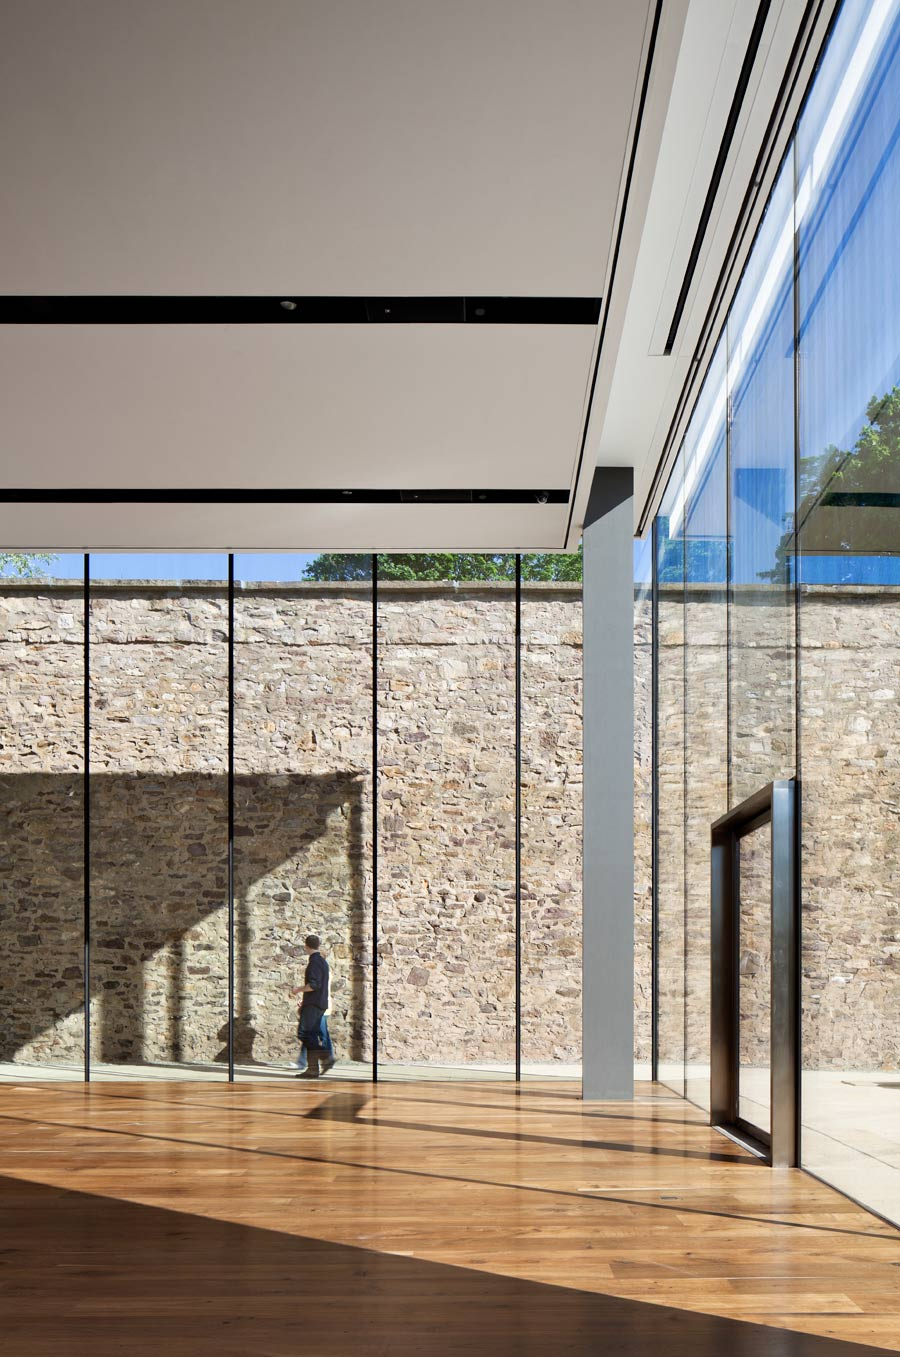 <p>Glass panels are structural as well as aesthetic, with only very slender (4 inch x 20 inch) columns occupying the space. <br><small>&copy; Michael Moran/OTTO</small></p>